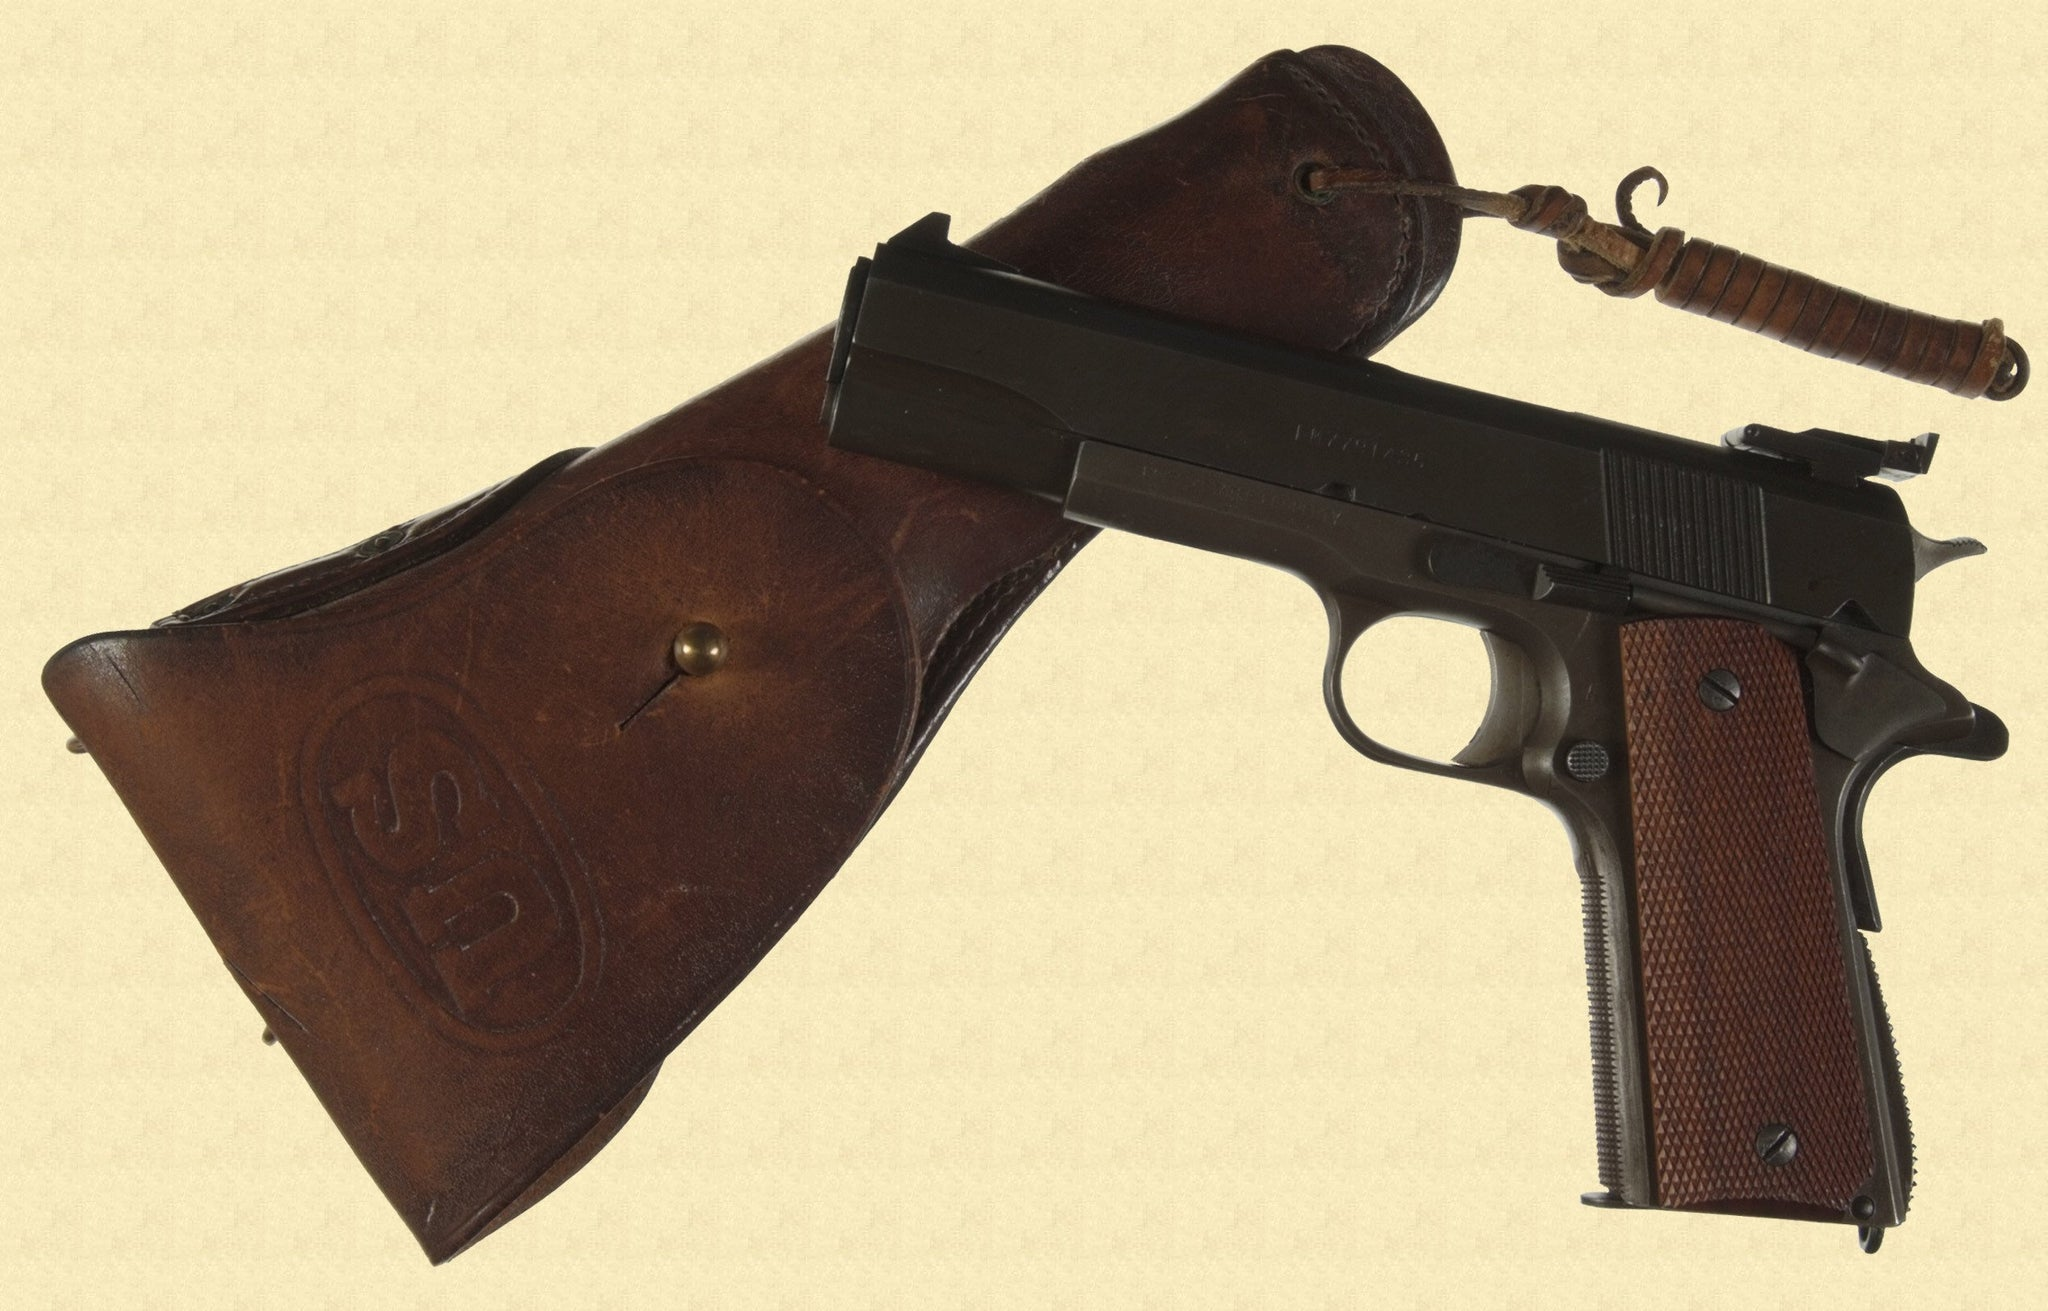 COLT M1911 NATIONAL MATCH